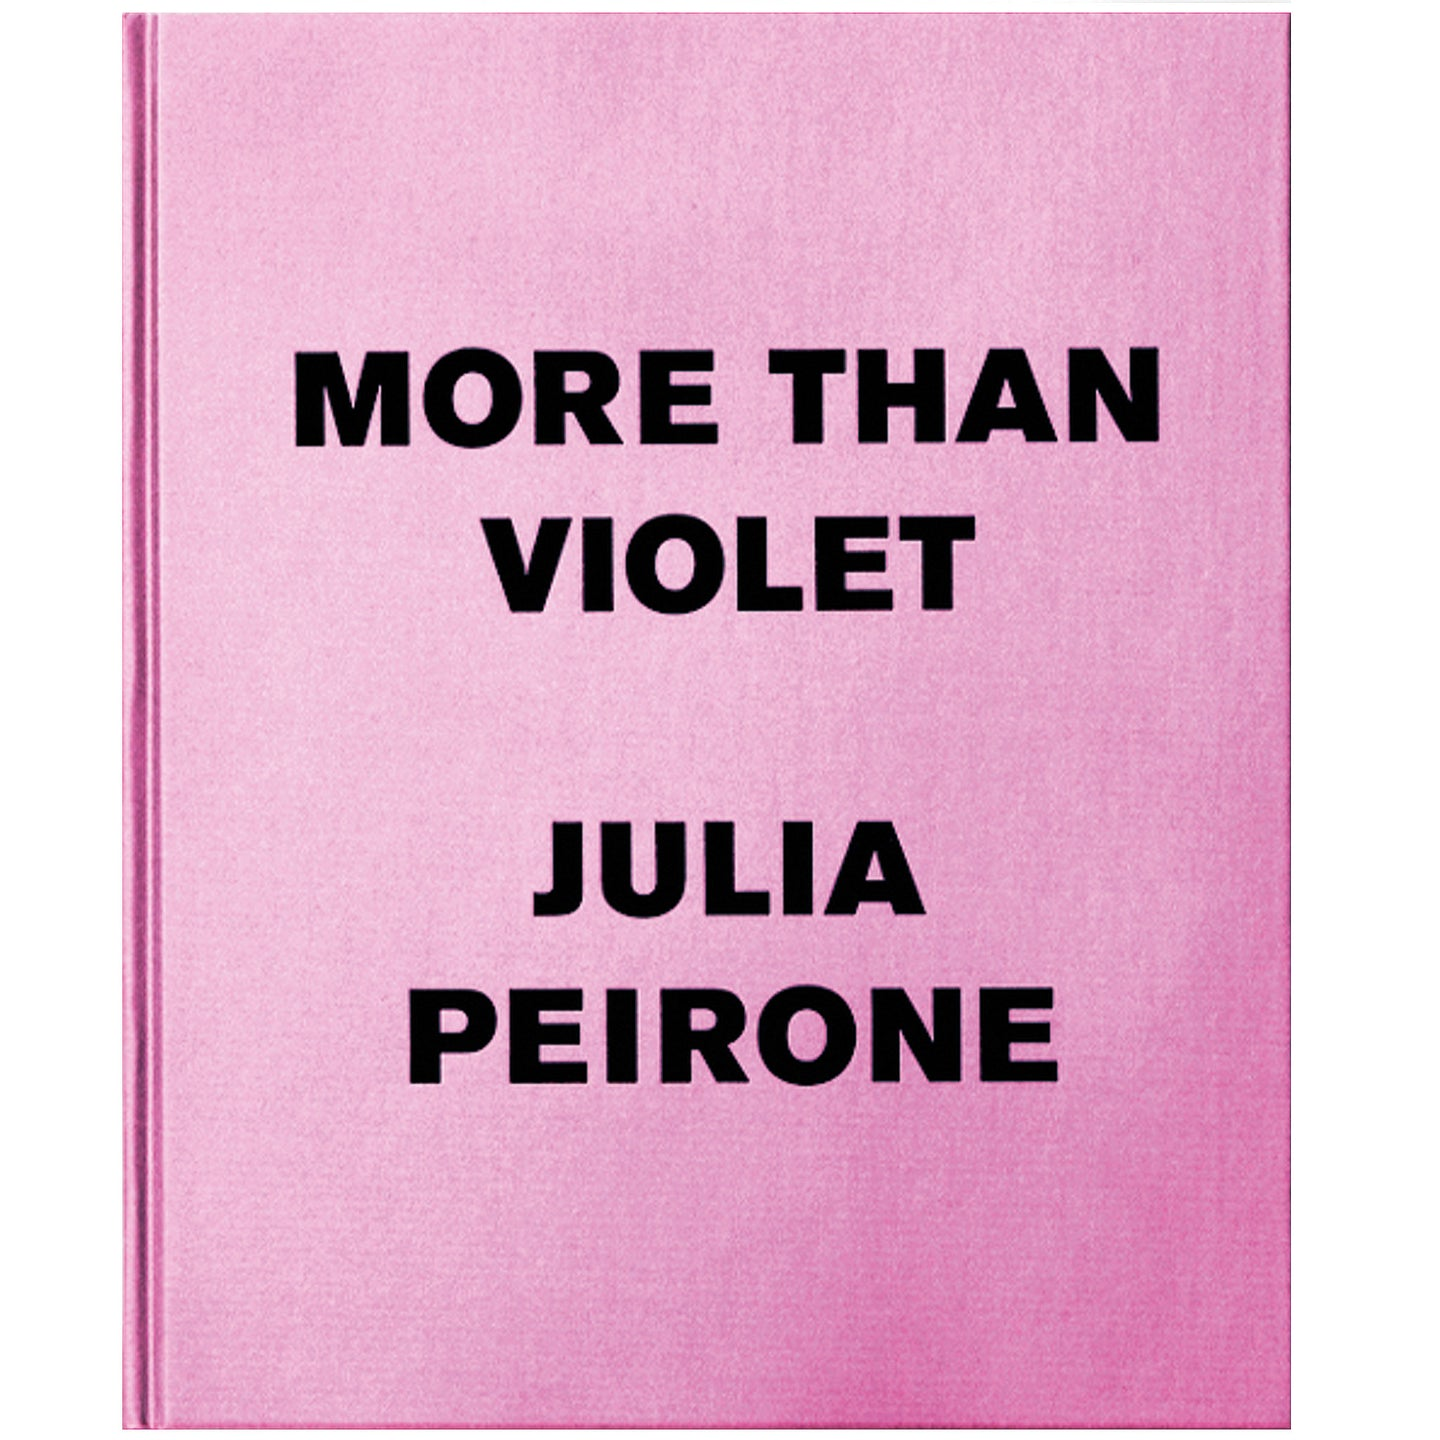 JULIA PEIRONE: MORE THAN VIOLET